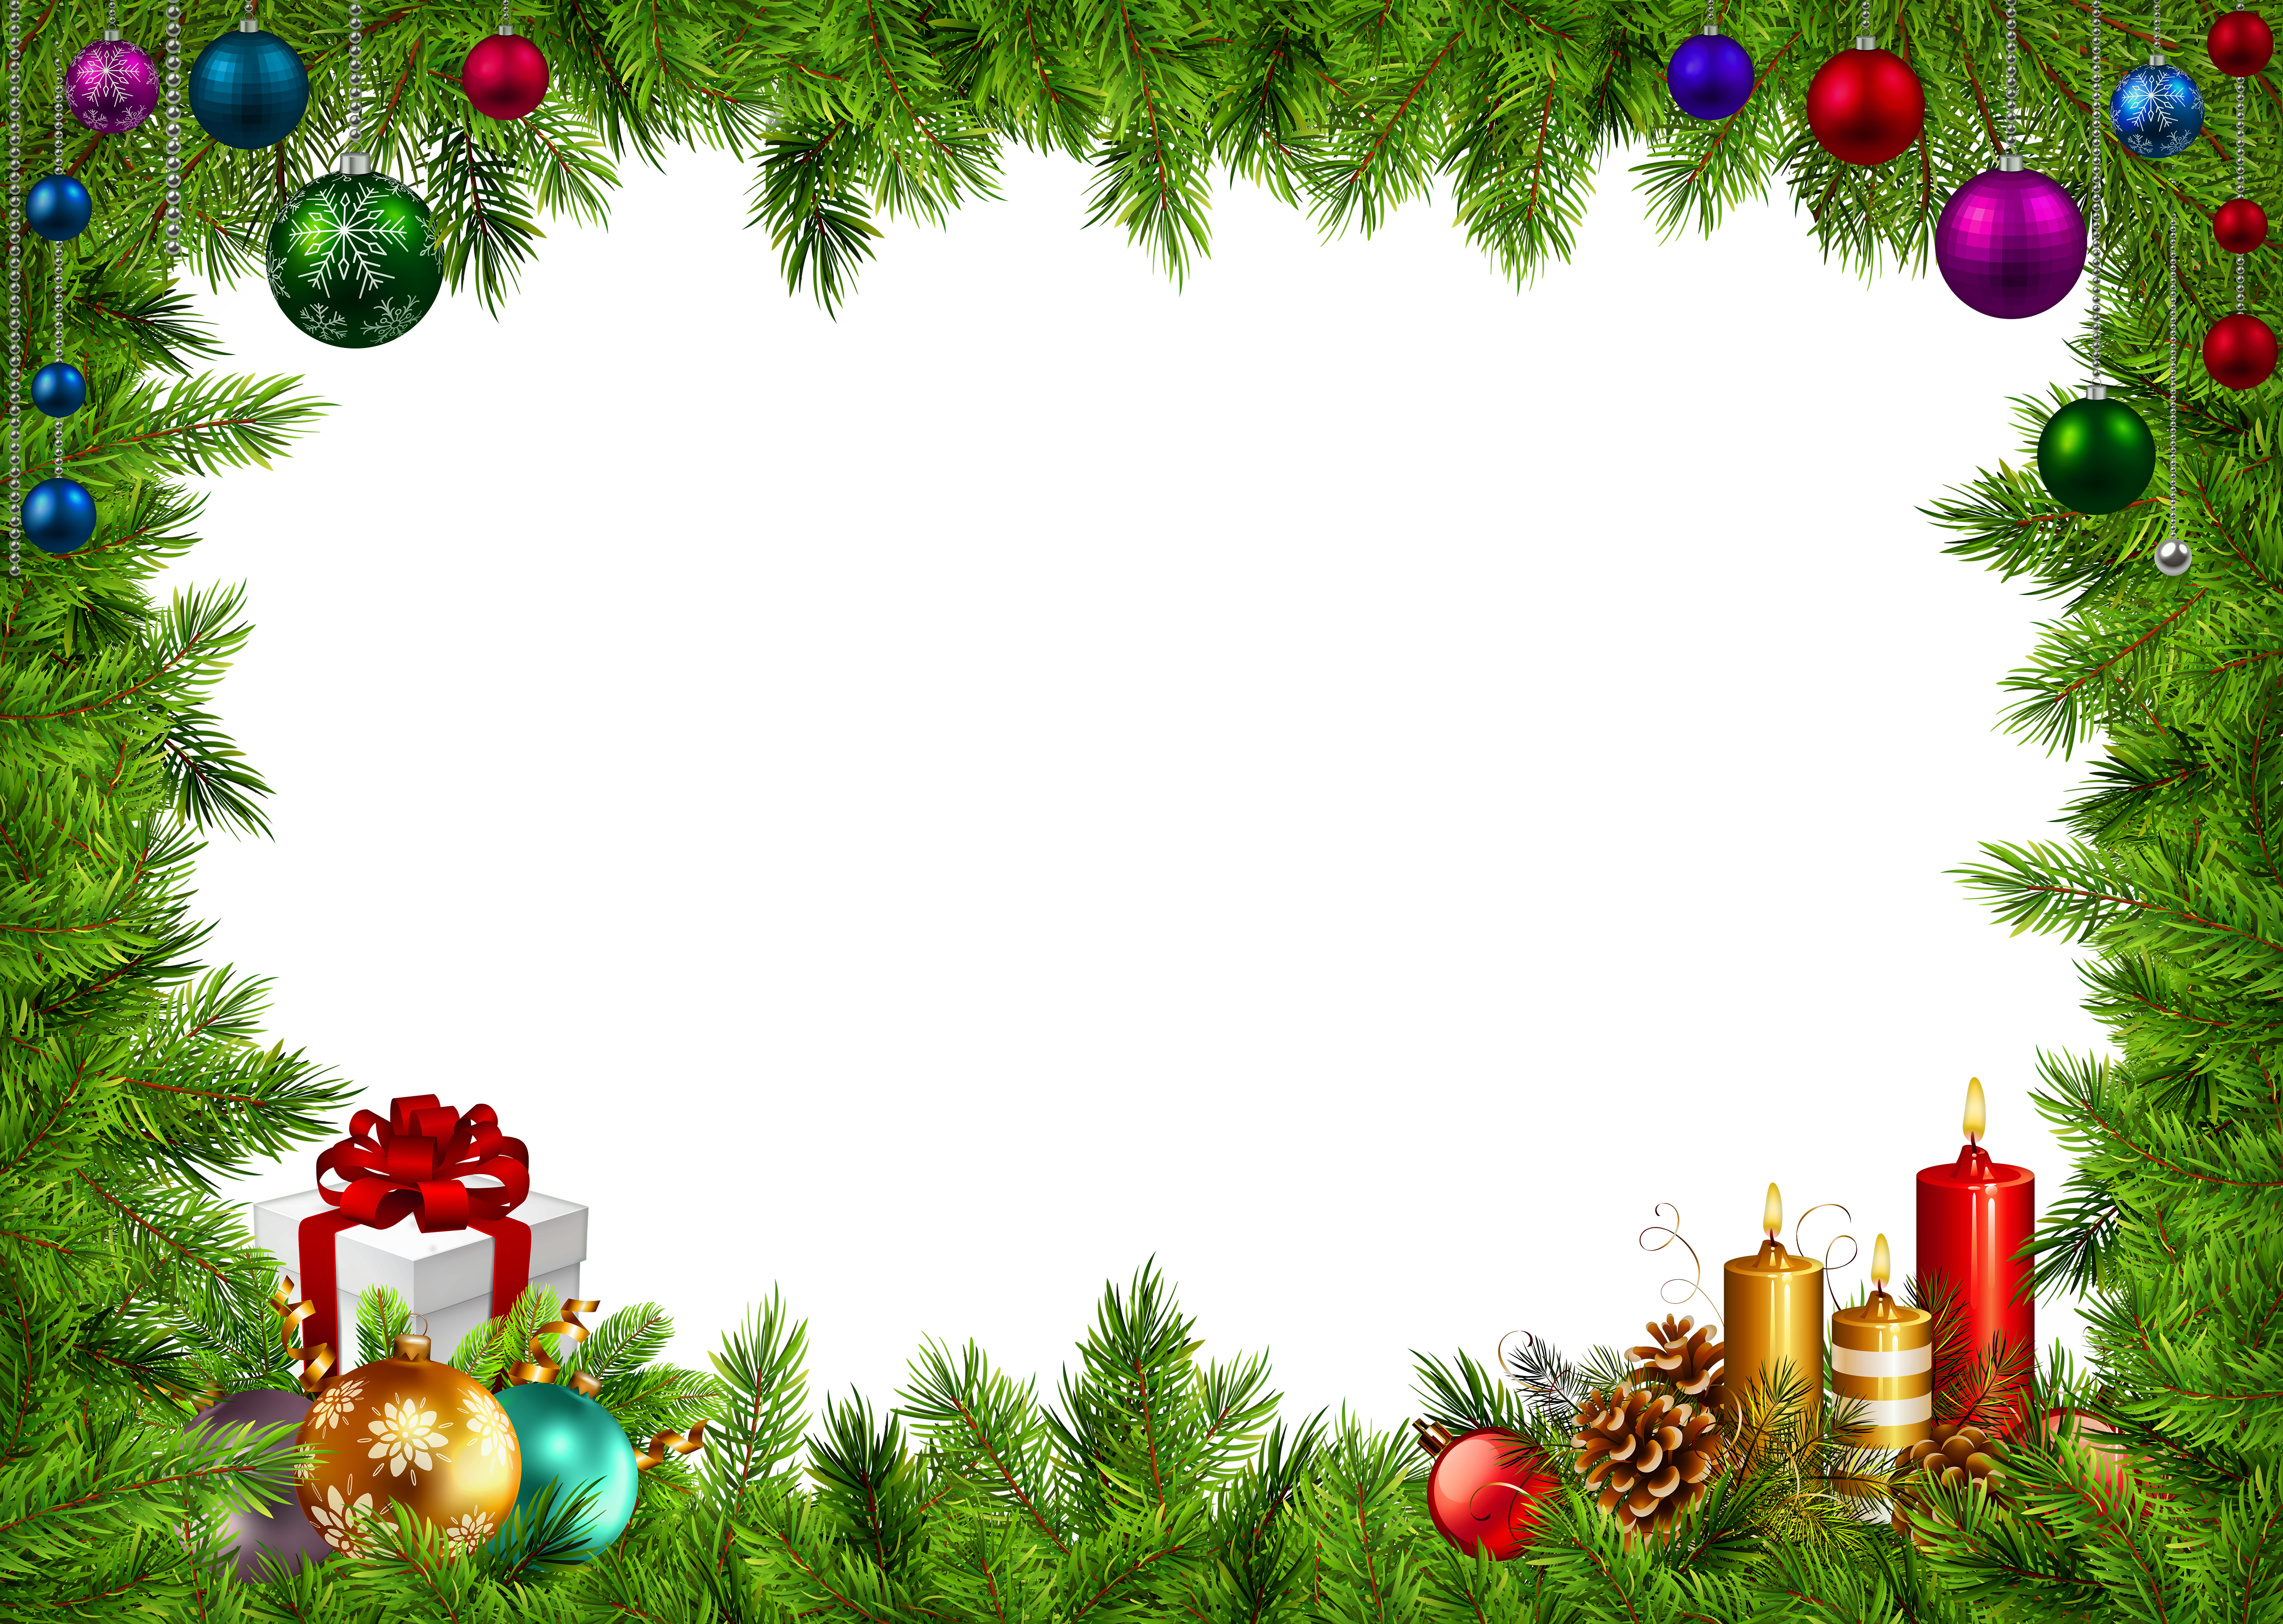 Holiday border frame png. Christmas image gallery yopriceville